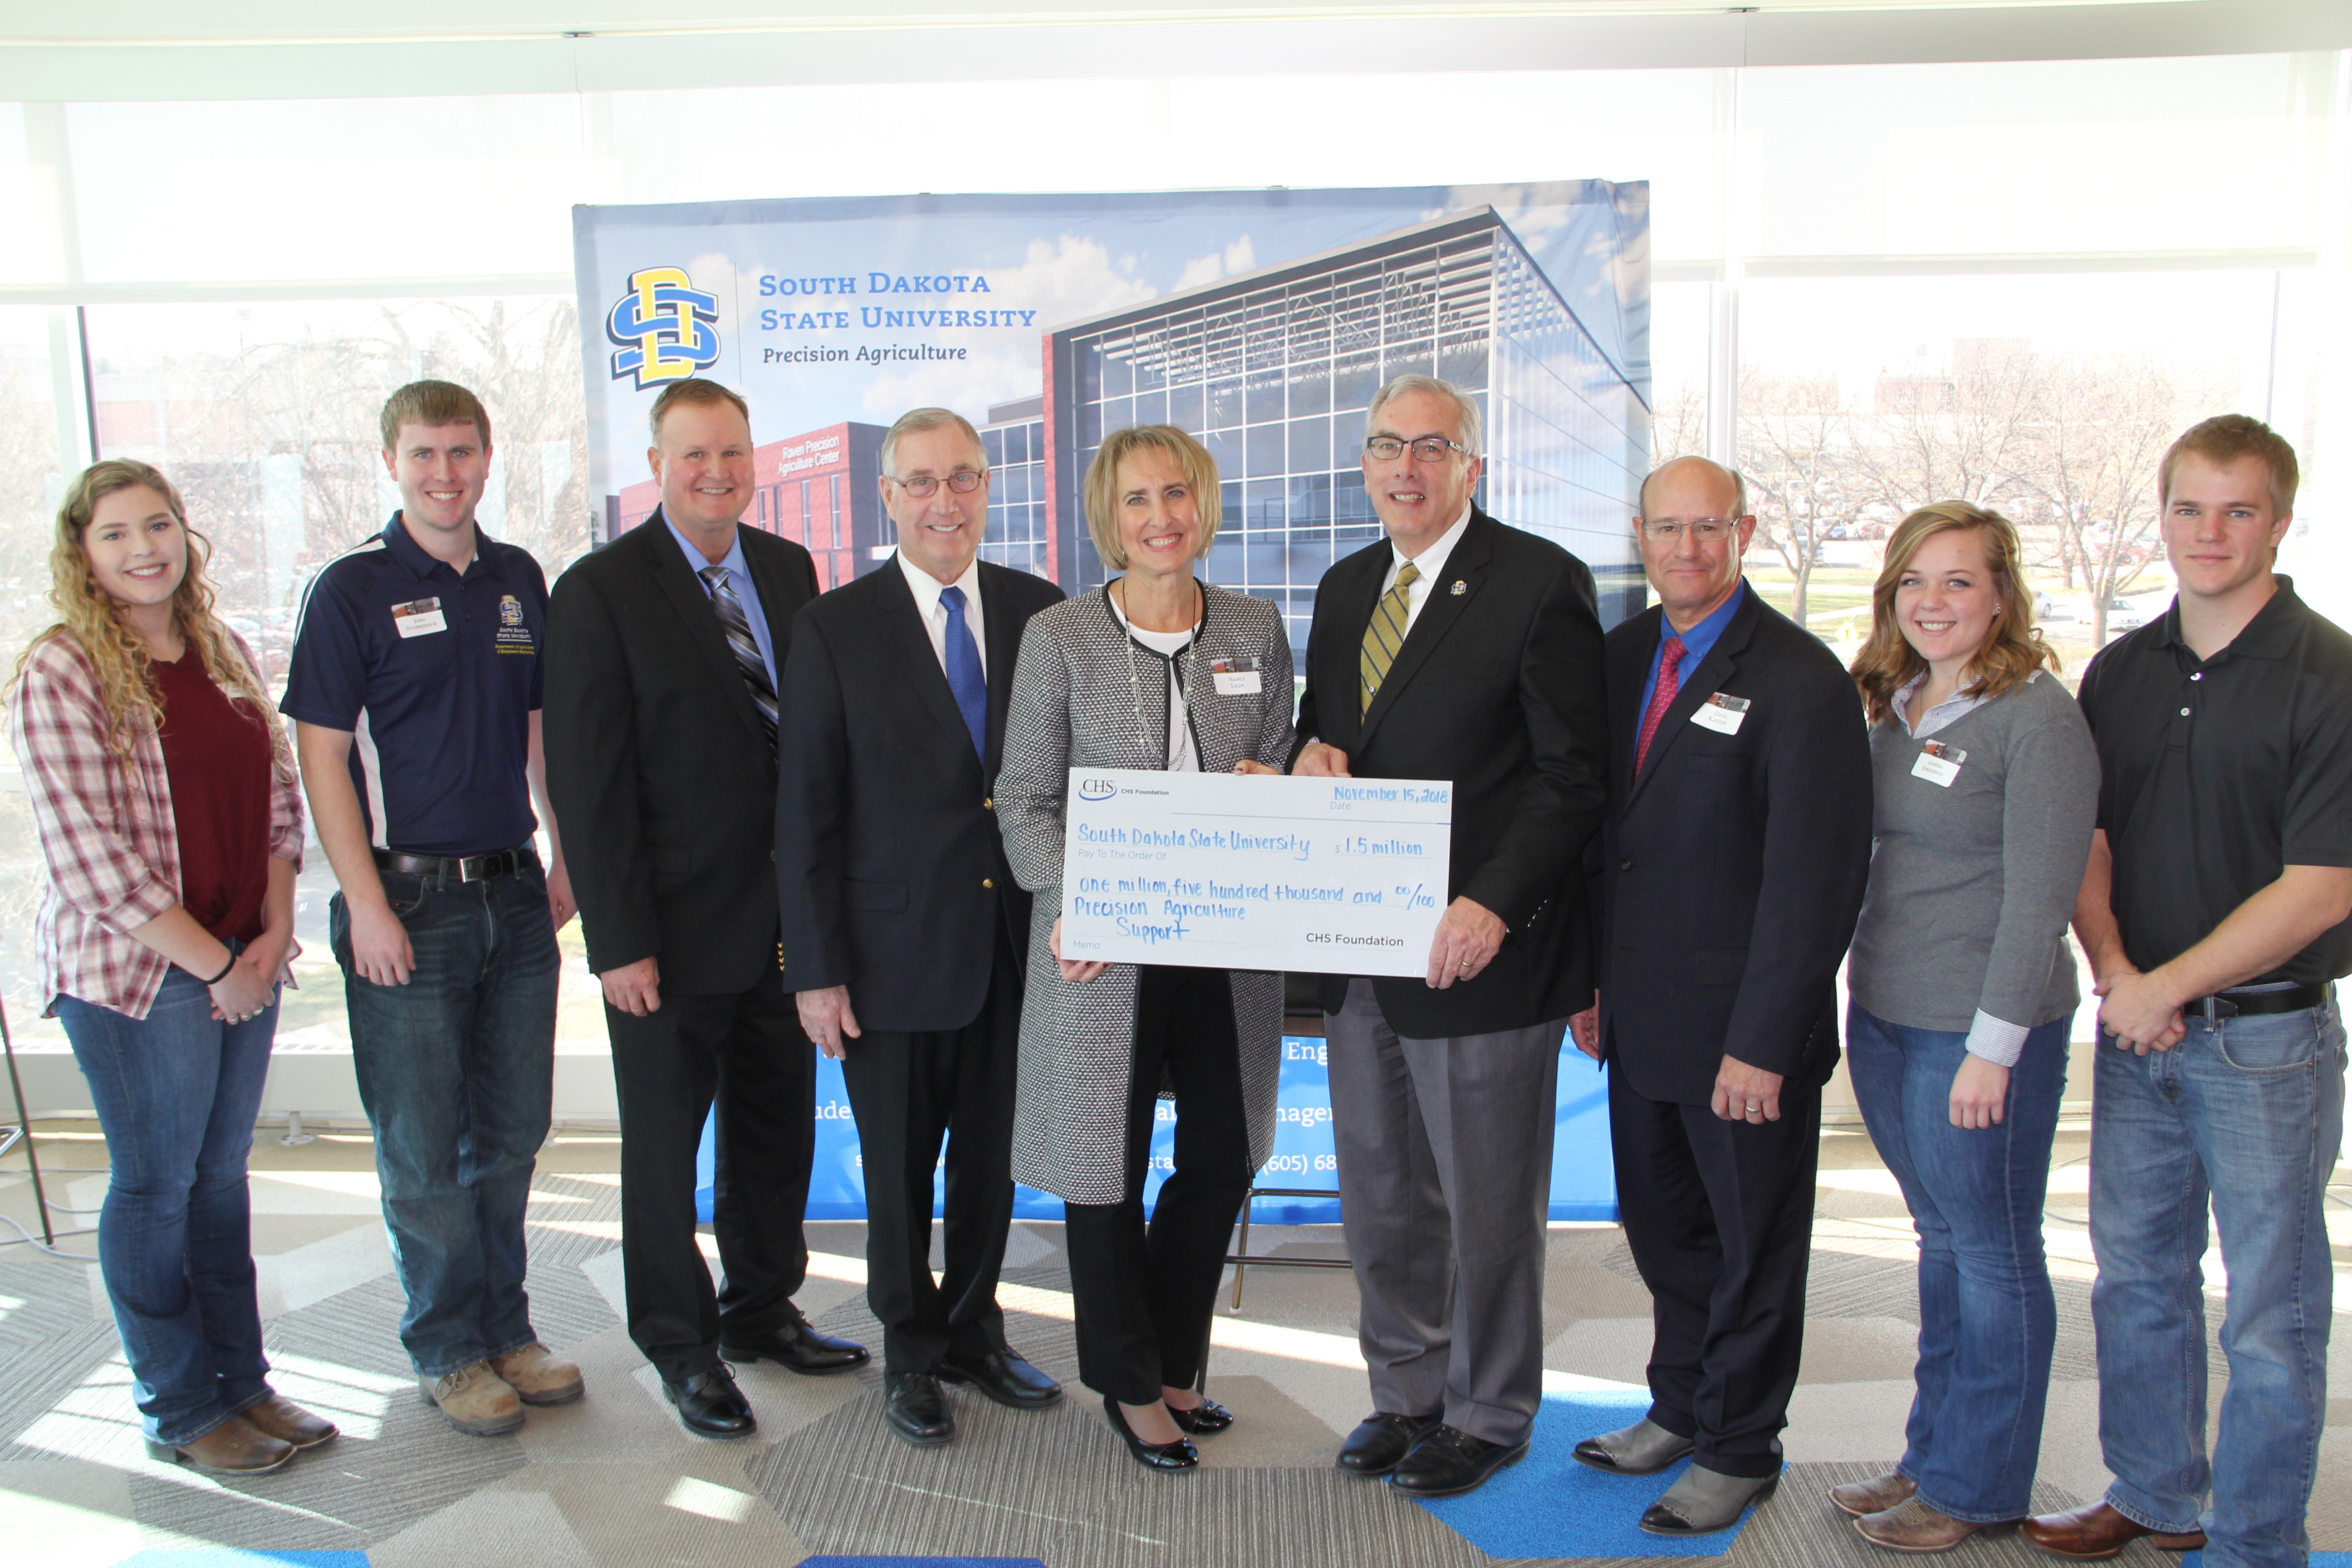 CHS Foundation handed check to SDSU leadership and students